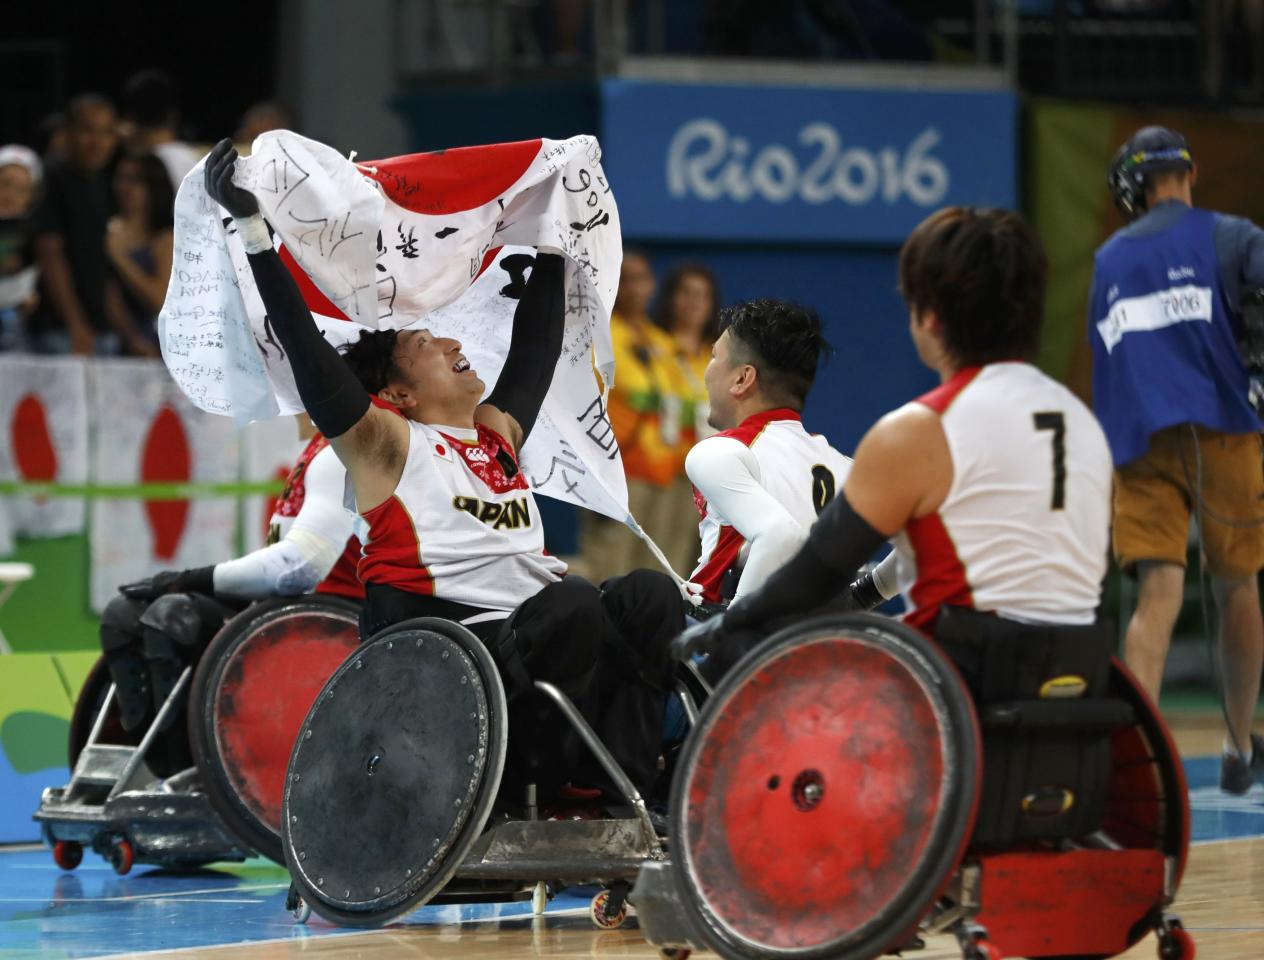 2016 Rio Paralympics - Wheelchair Rugby - Final - Mixed Team Bronze Medal Final - Japan v Canada - Carioca Arena 1 - Rio de Janeiro, Brazil - 18/09/2016. Kazuhiko Kanno (L) of Japan holds a national flag as hw with the teammates celebrates winning bronze medals. REUTERS/Carlos Garcia Rawlins  FOR EDITORIAL USE ONLY. NOT FOR SALE FOR MARKETING OR ADVERTISING CAMPAIGNS.